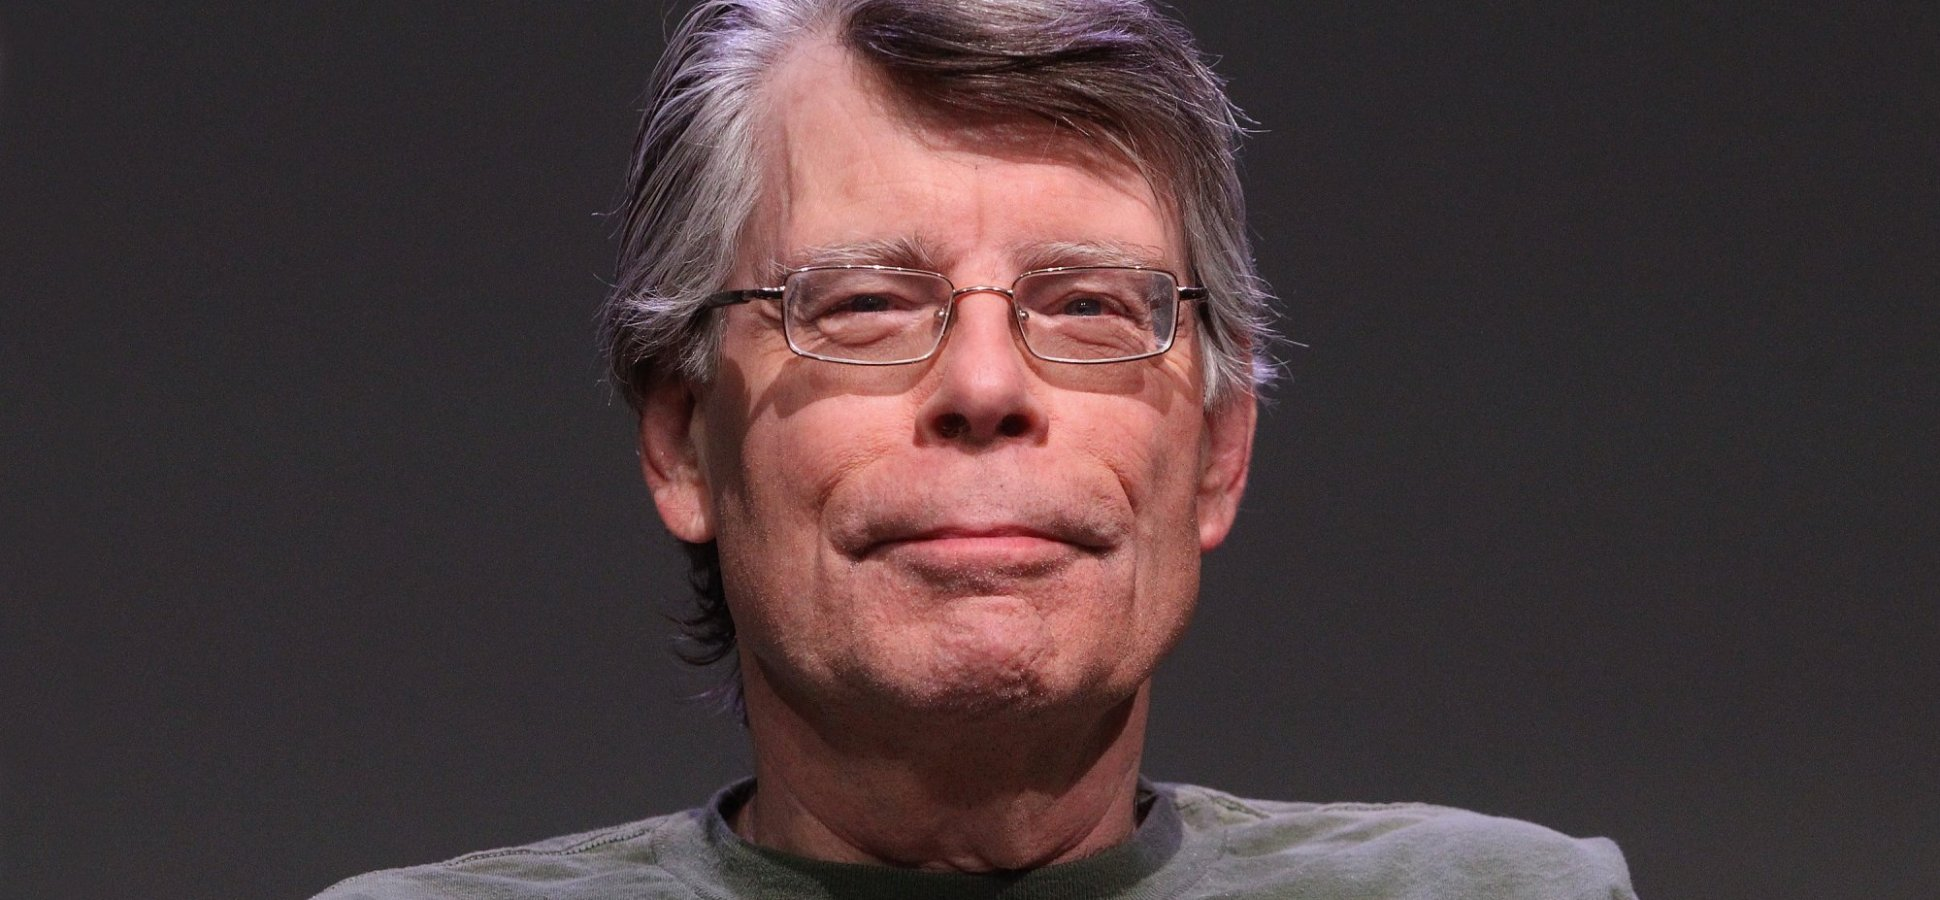 Want to be a Better Writer? Here is Stephen King's Essential Advice